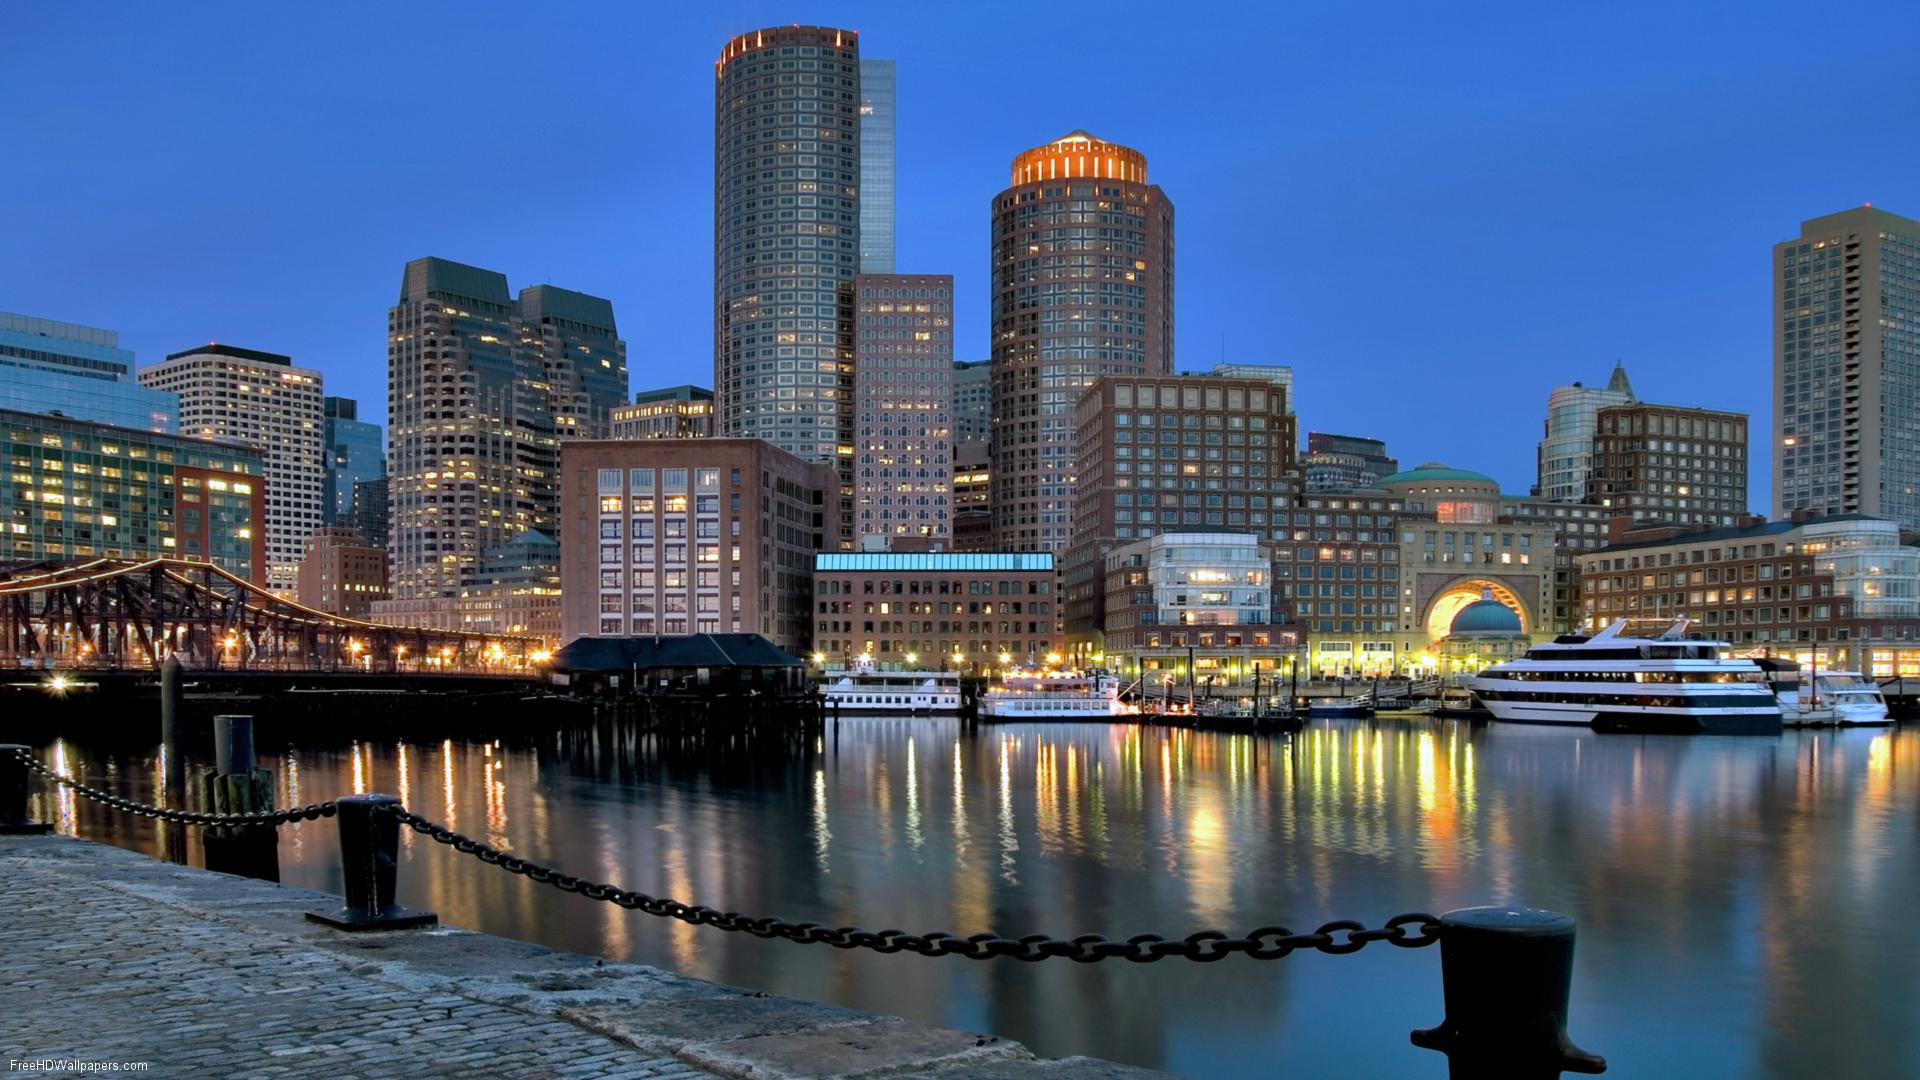 Holiday maze, Boston, USA, City skyline by dawn